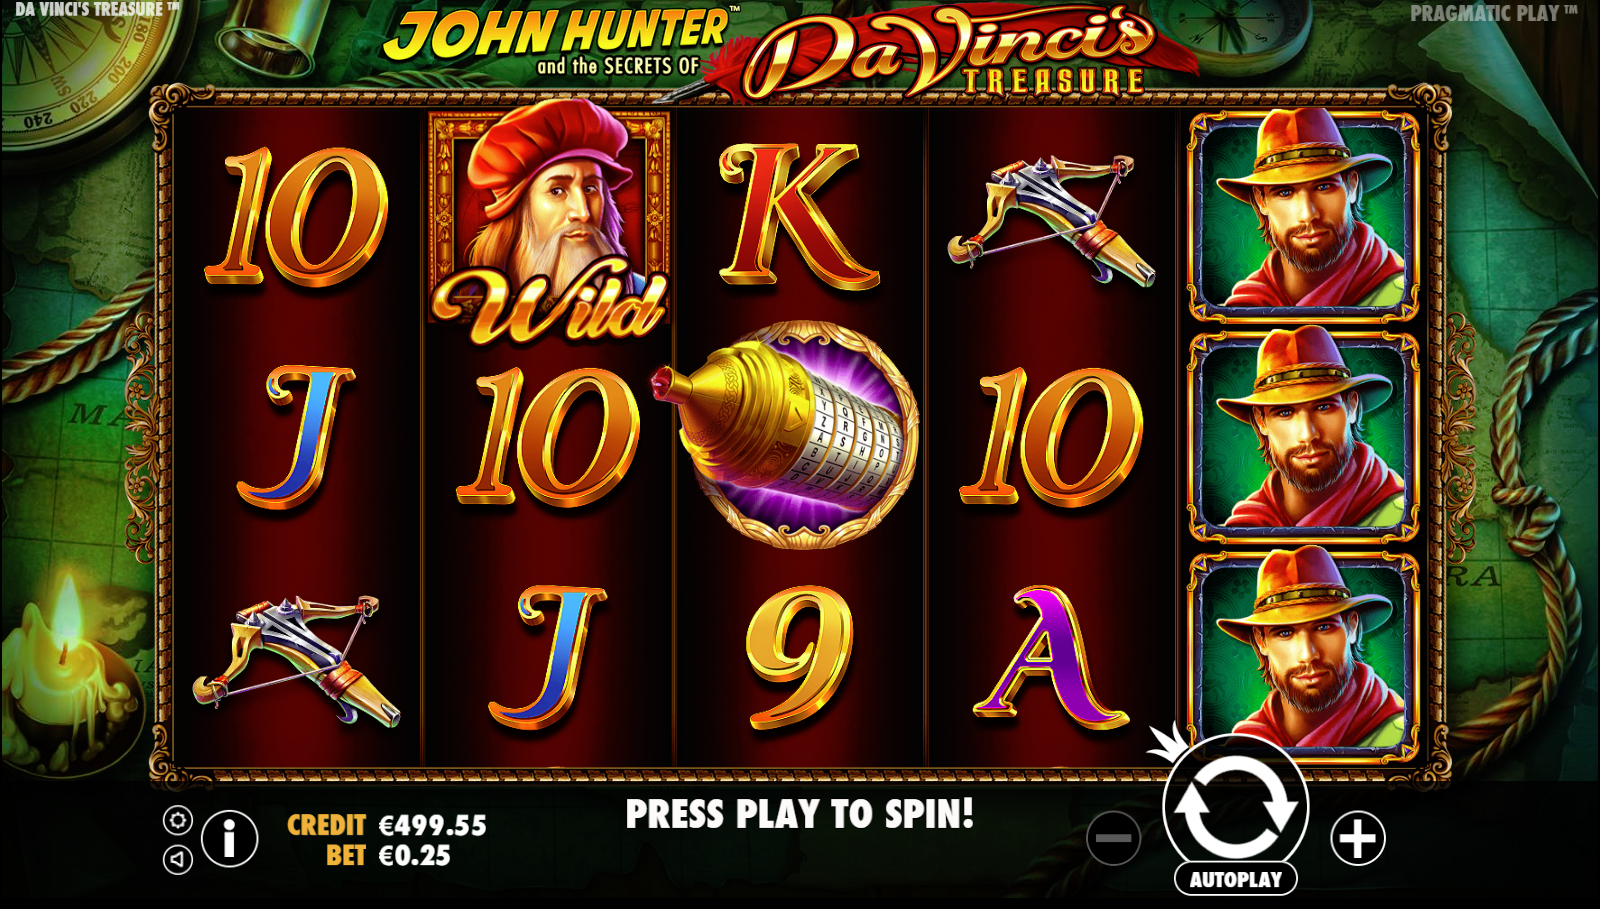 pragmatic play slots da vinci treasure